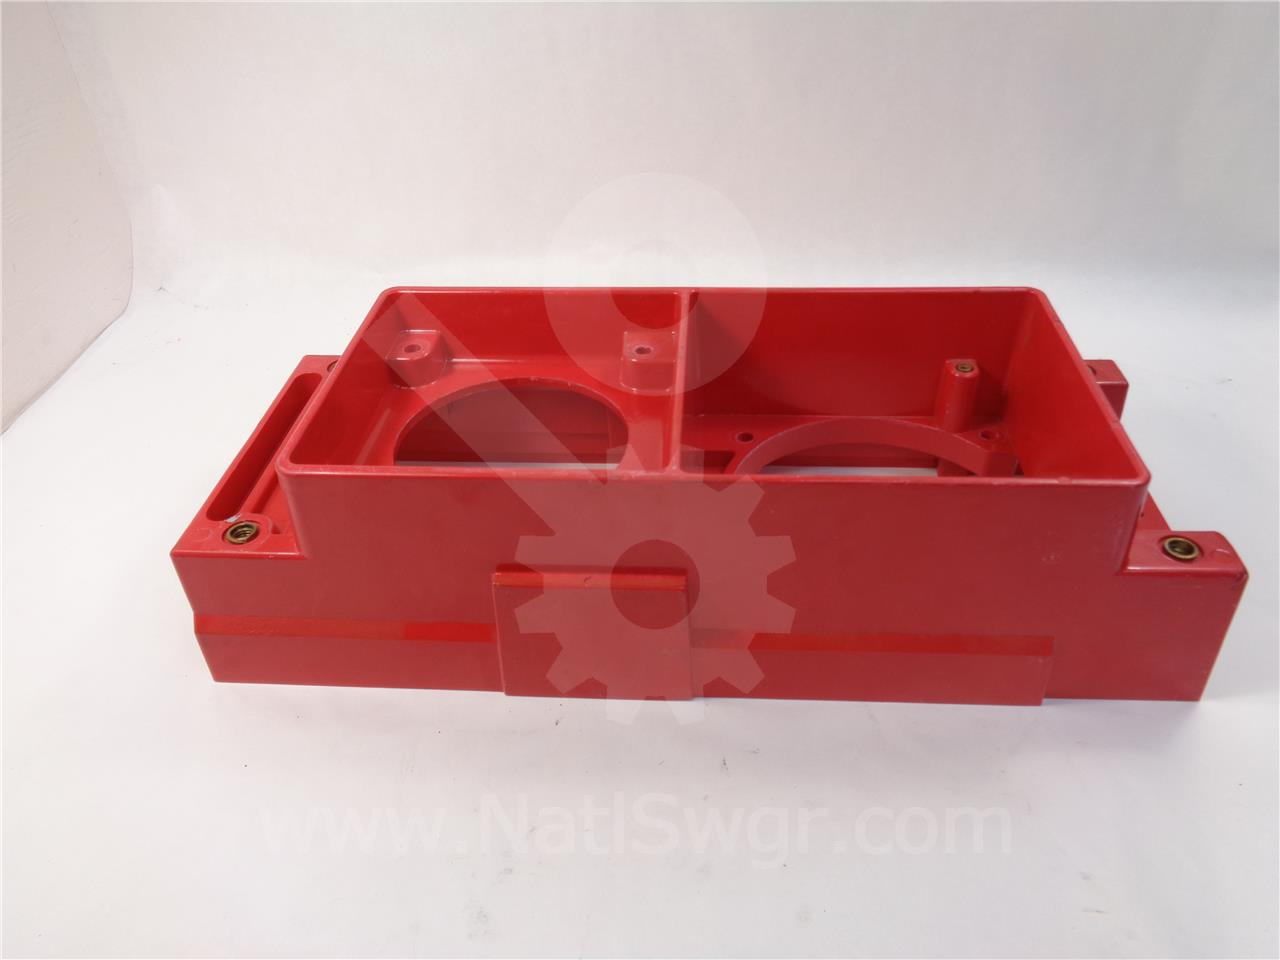 708956-K01S ITE RED REAR MOLDING FOR K-3000S